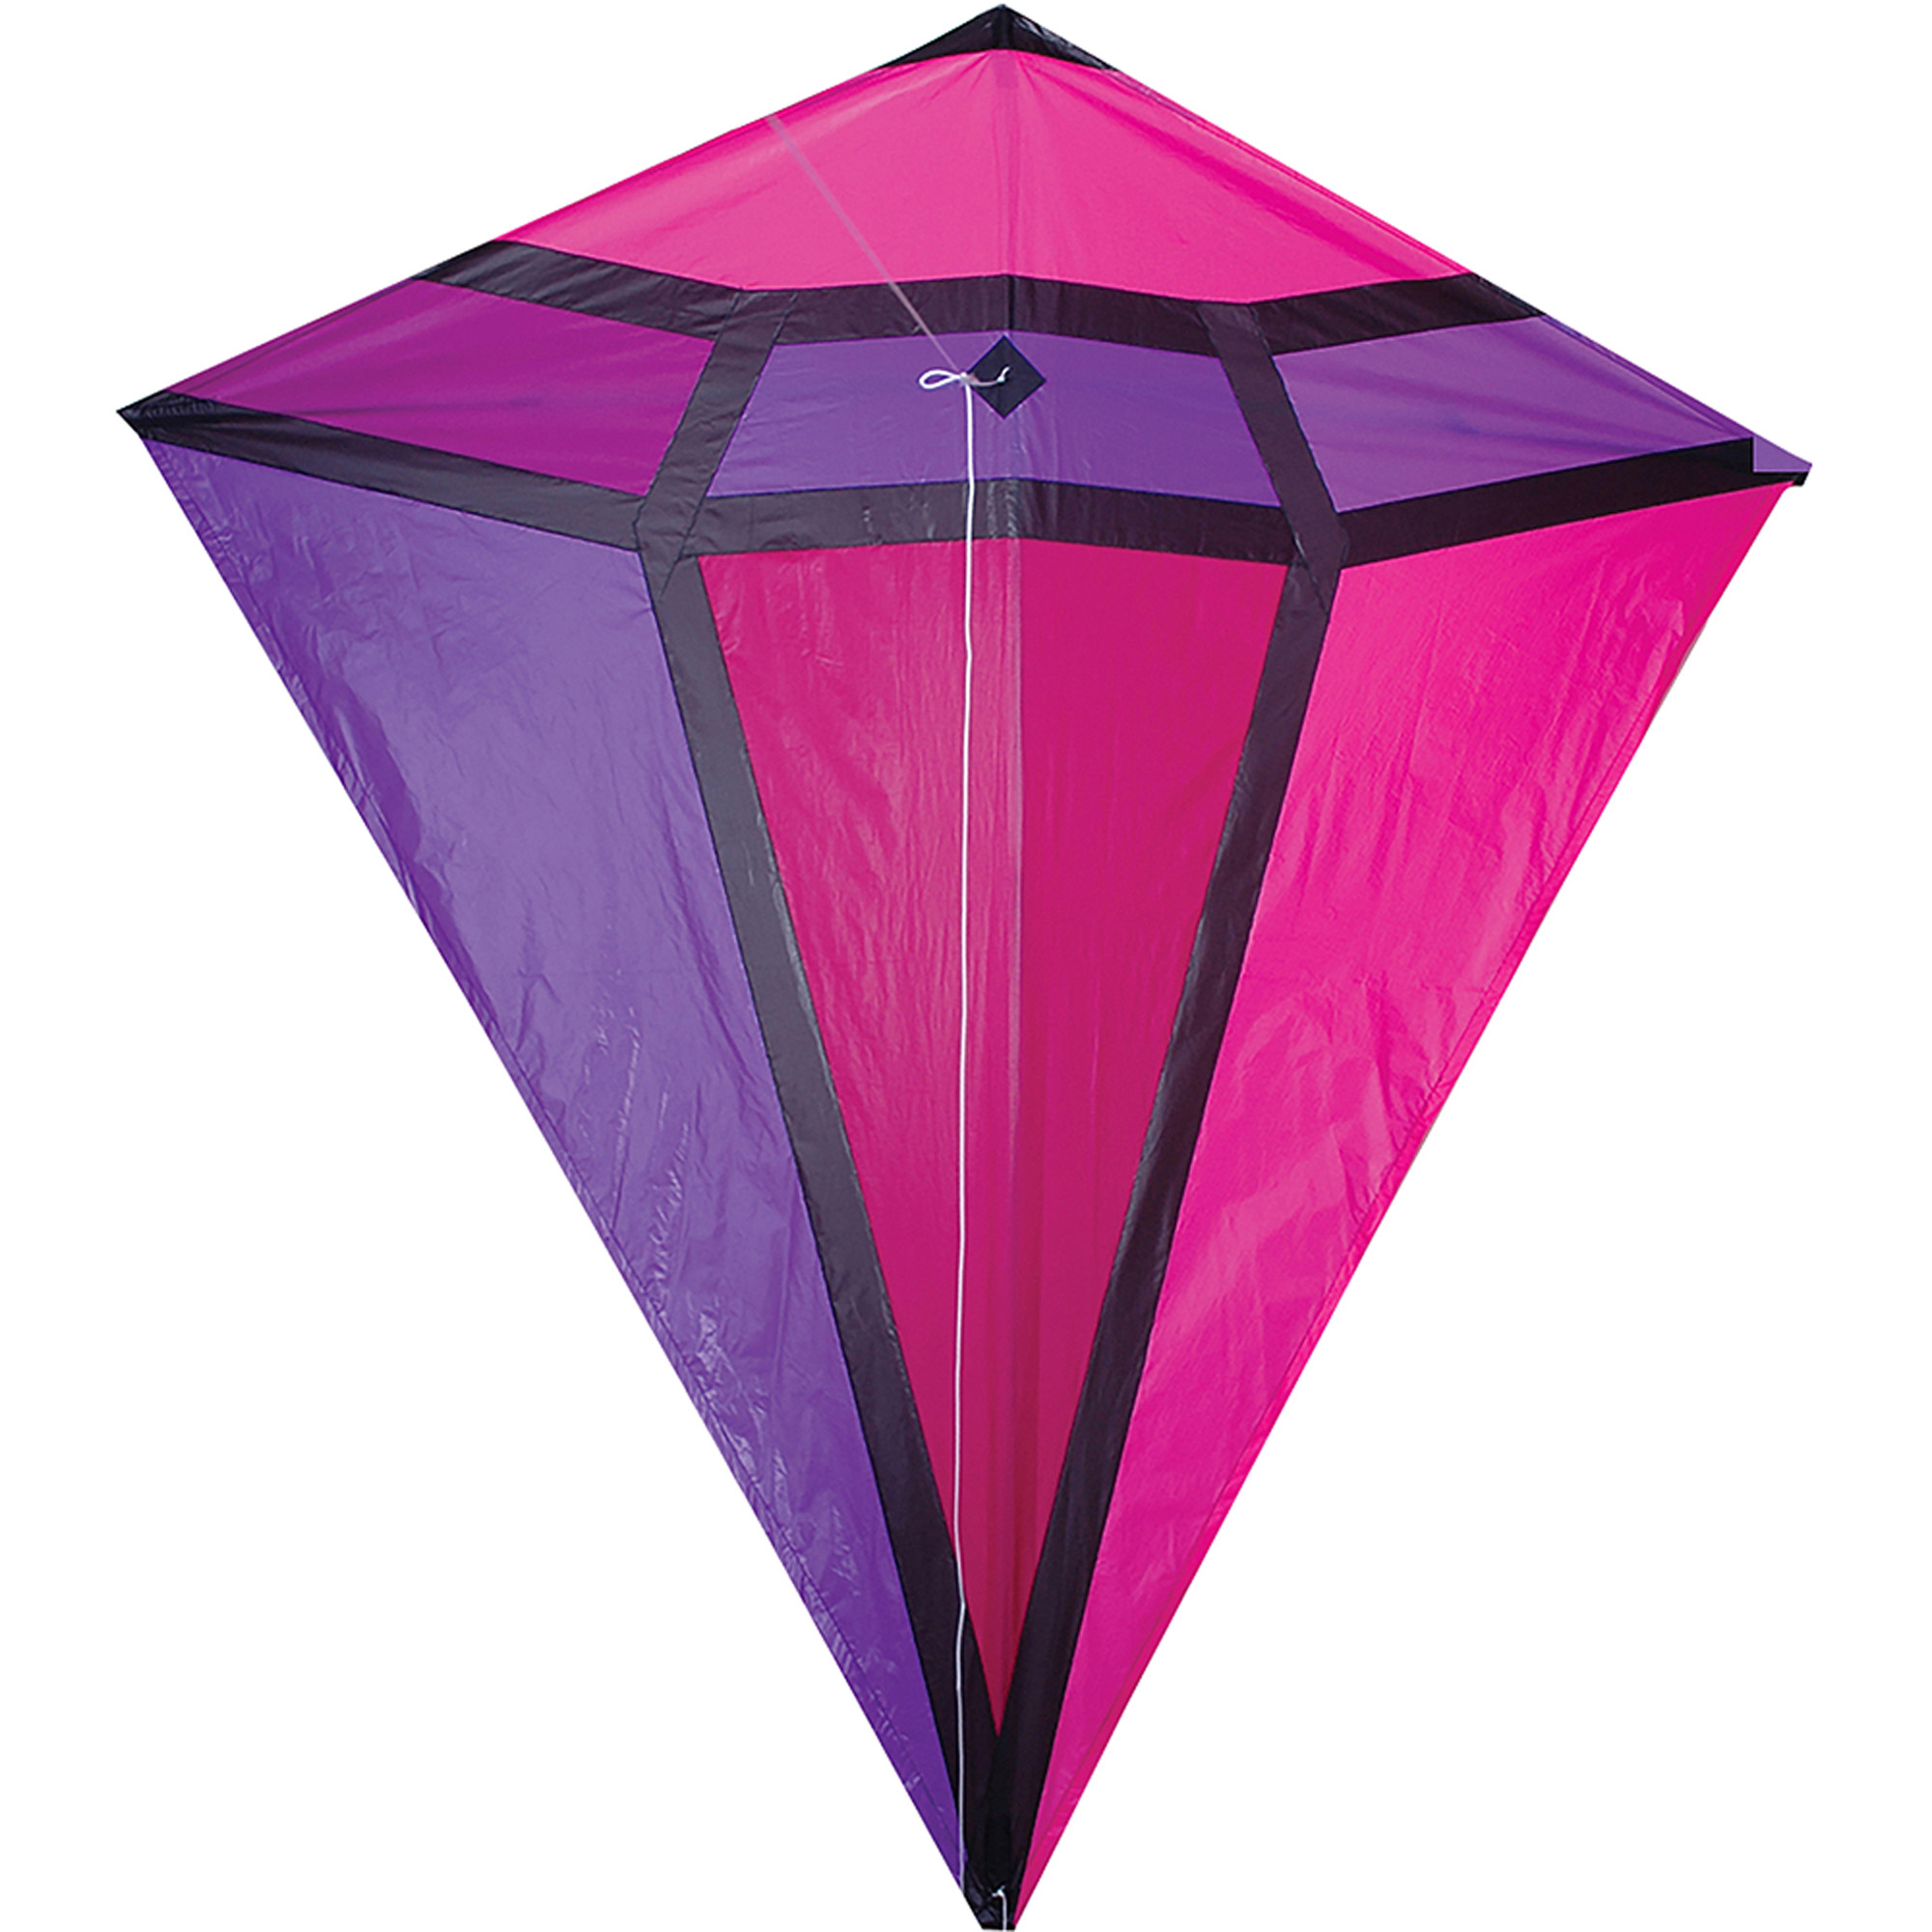 "Premier Designs 65"" Diamond Kite, Ruby"